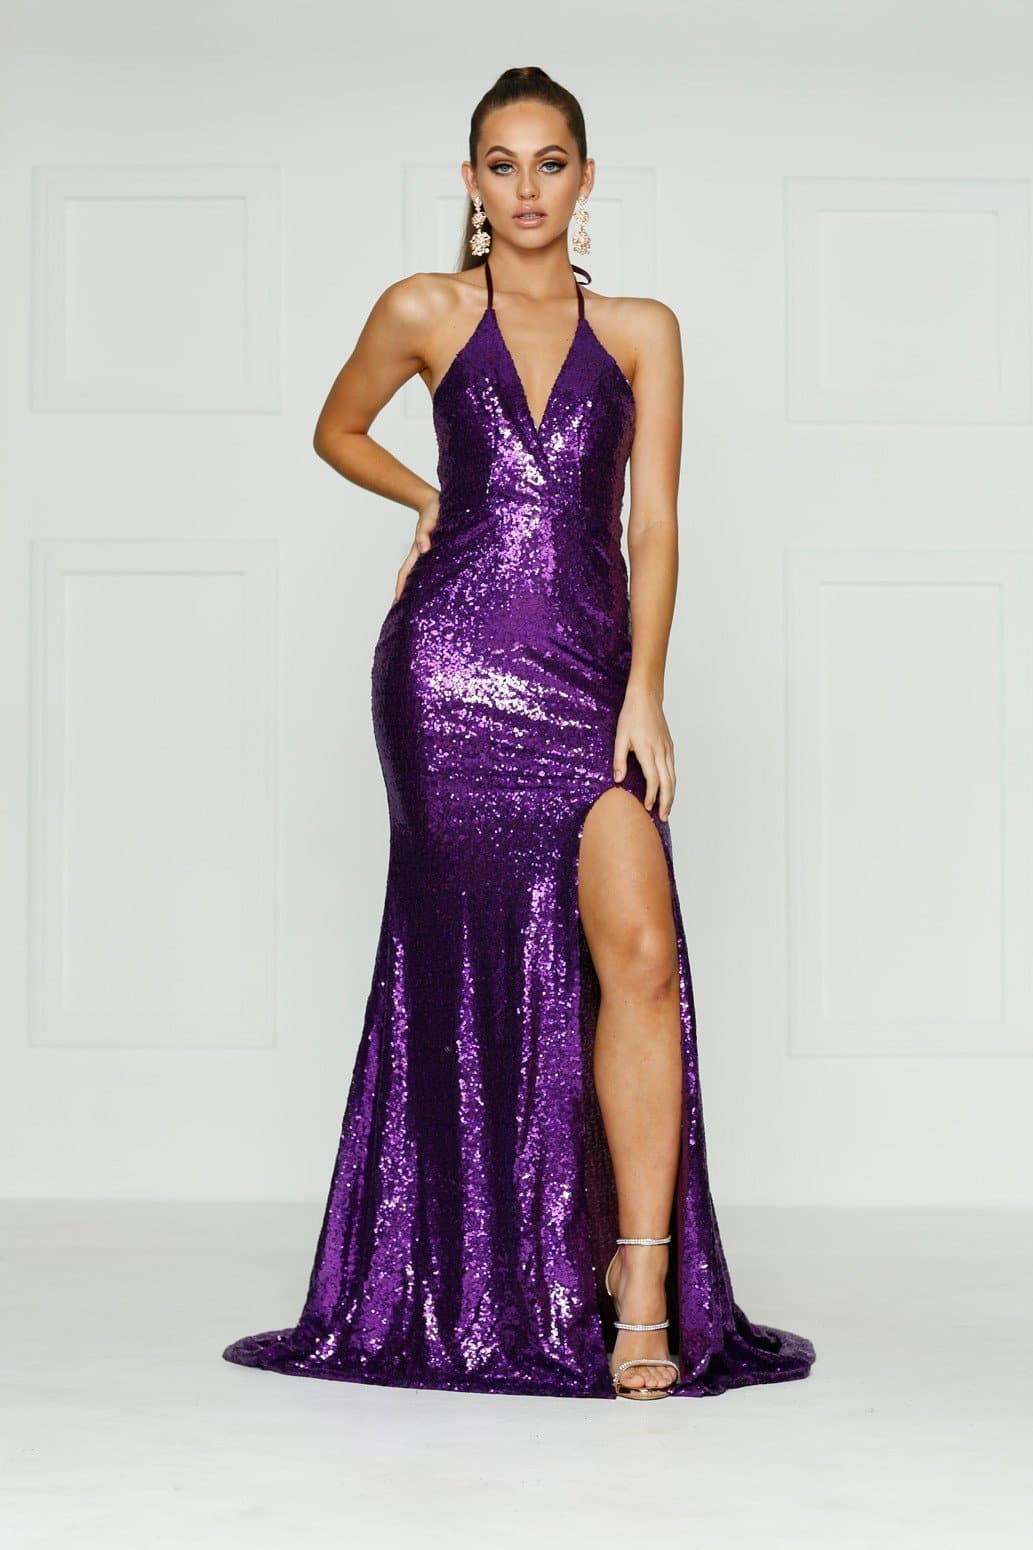 A&N Kylie- Purple Sequin Dress with Low Back and Side Slit